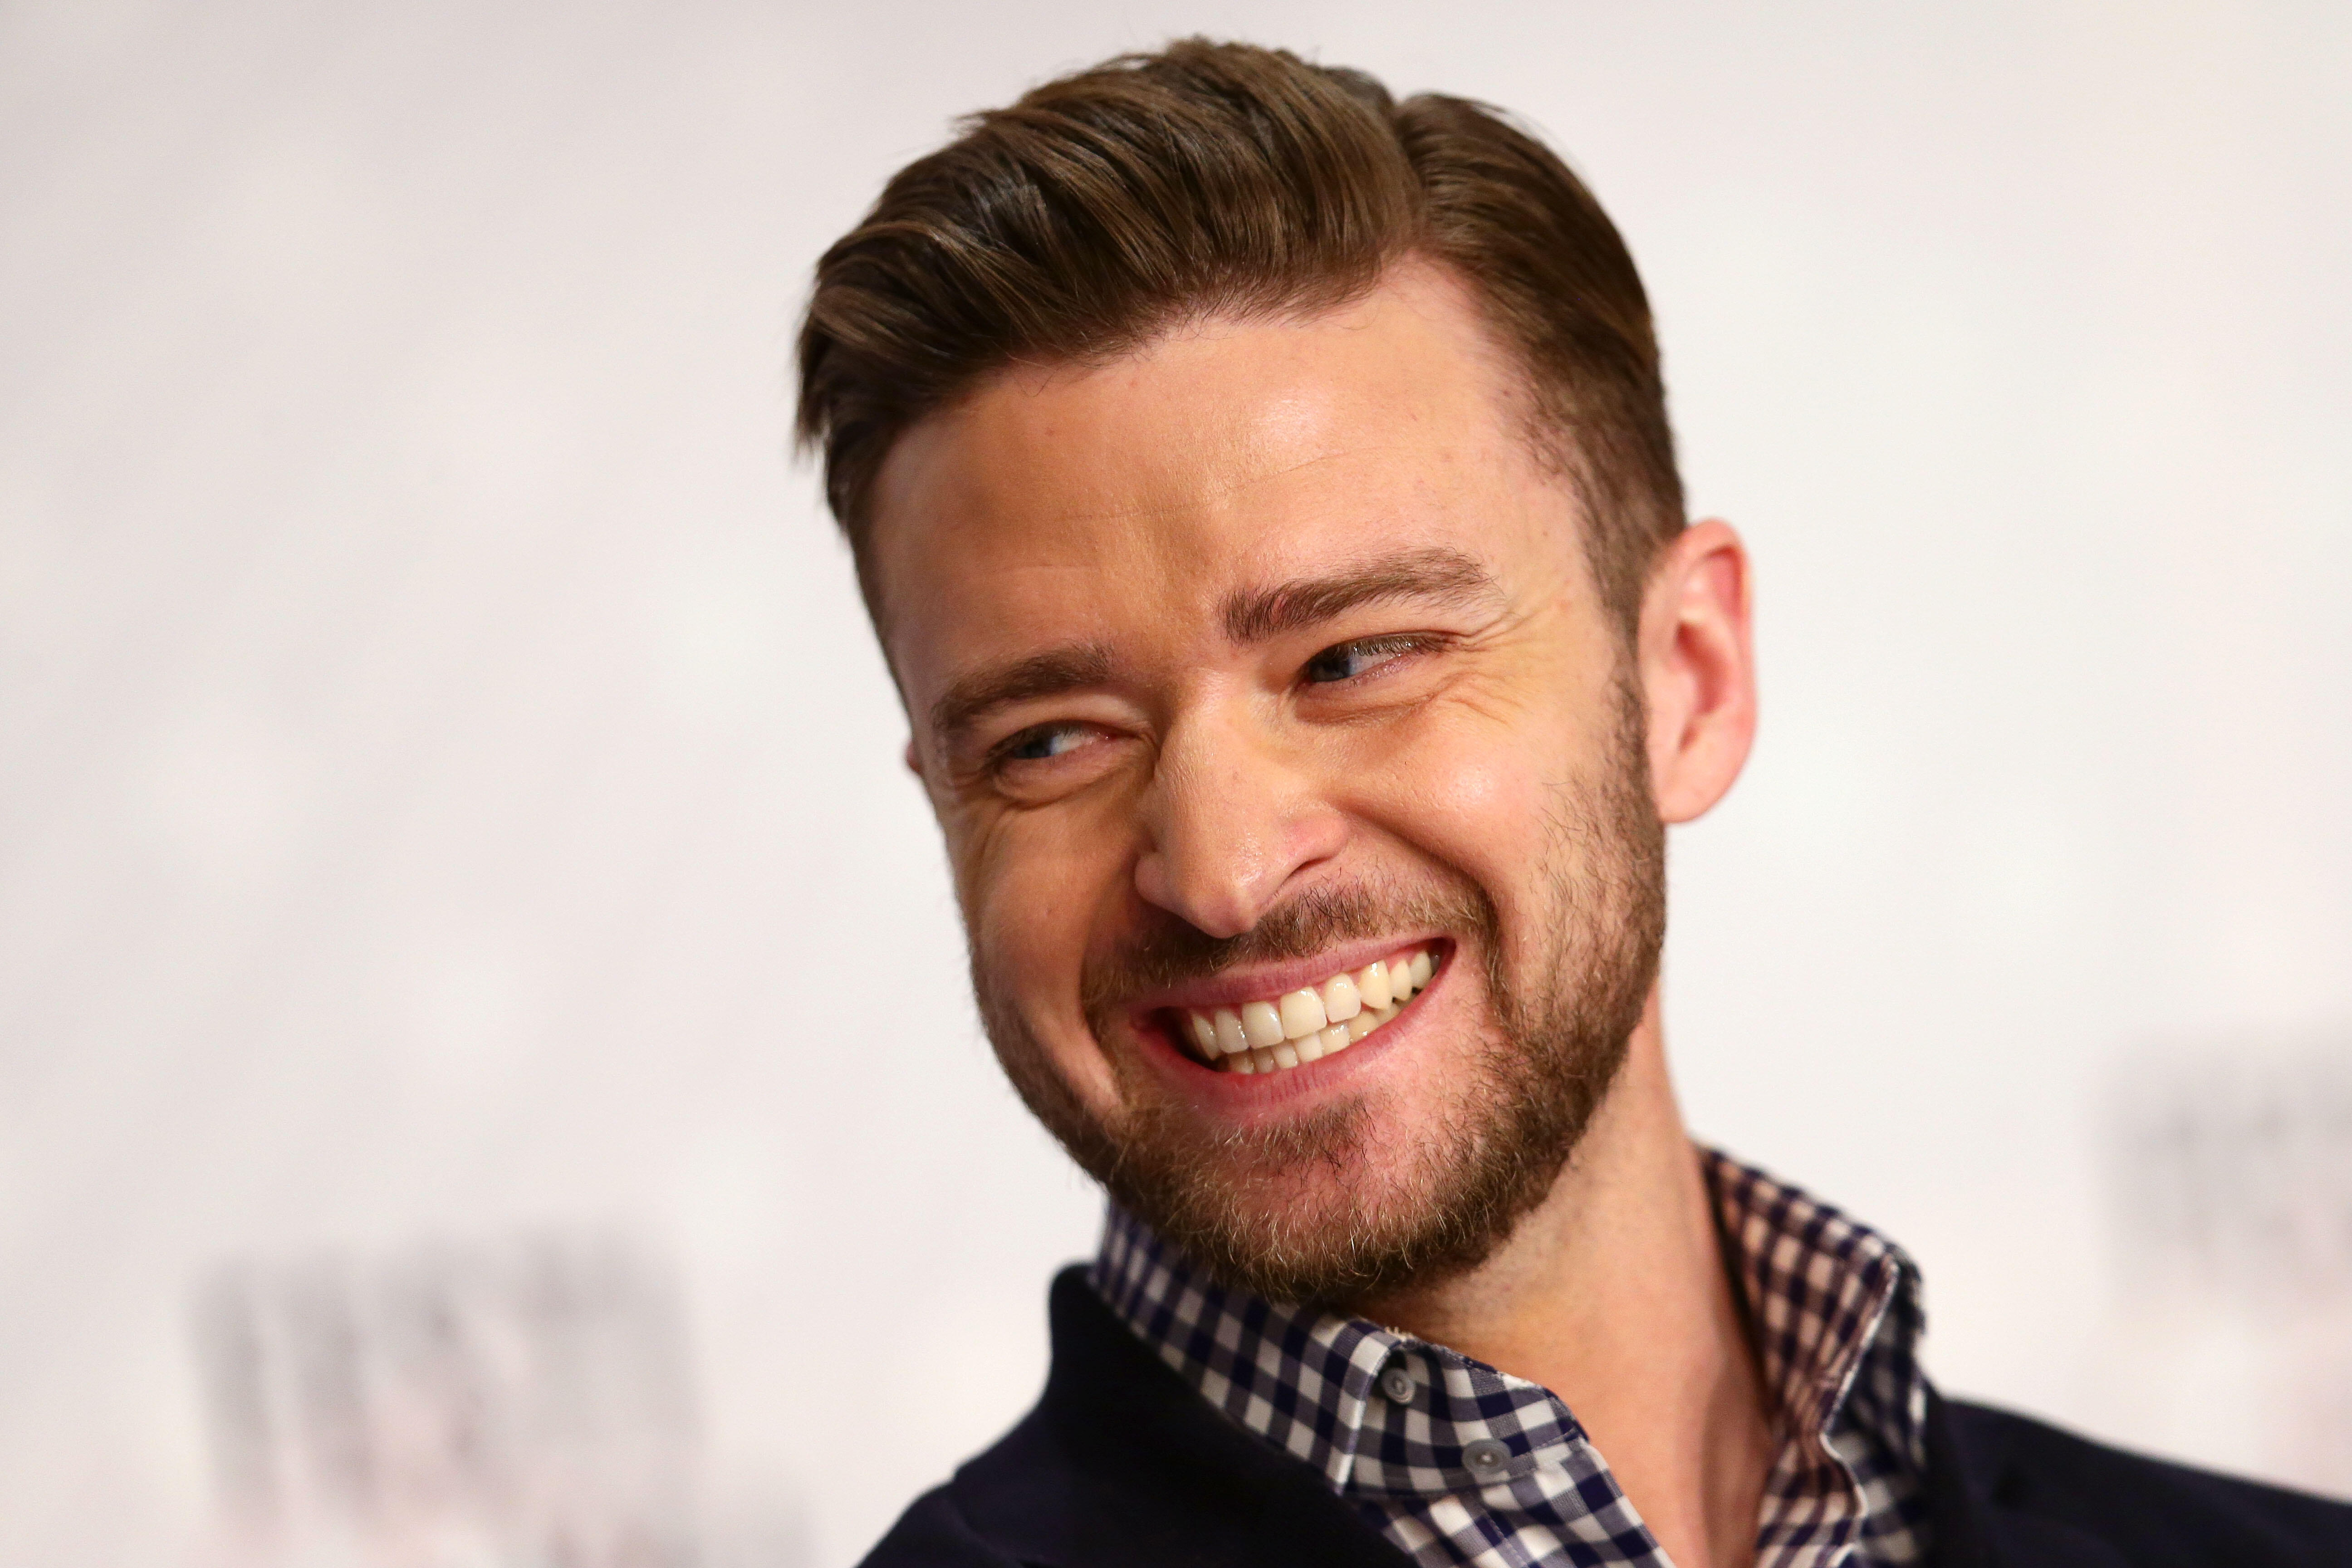 CANNES, FRANCE - MAY 19:  Actor Justin Timberlake attends the 'Inside Llewyn Davis' Press Conference during The 66th Annual Cannes Film Festival at Palais des Festivals on May 19, 2013 in Cannes, France.  (Photo by Vittorio Zunino Celotto/Getty Images)